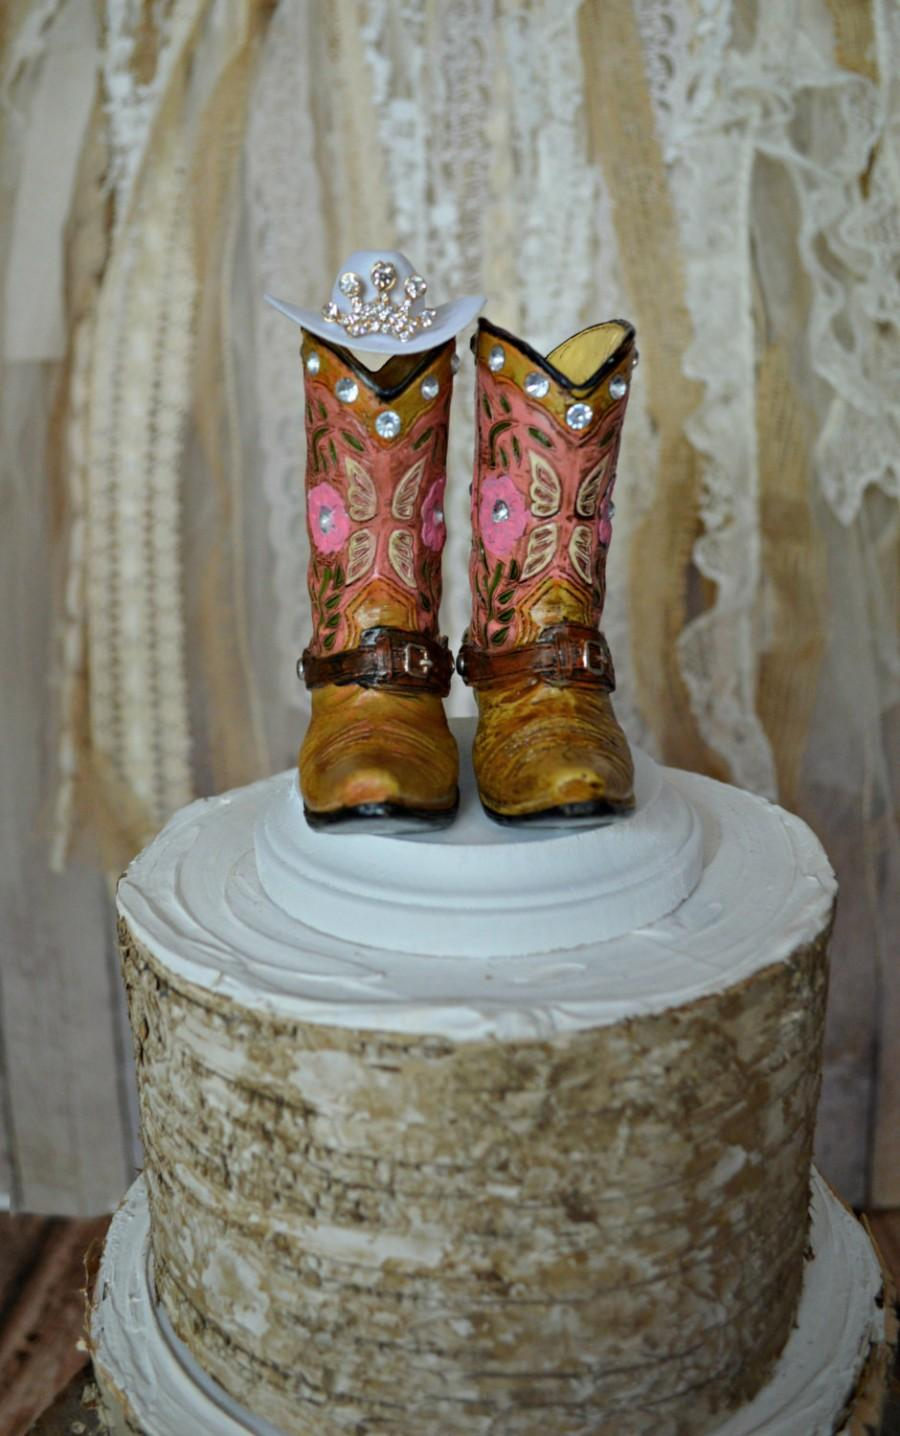 Cowgirl The Birthday Party Cake Topper Girls Pink Boots Sweet Sixteen Hat Western Decorations